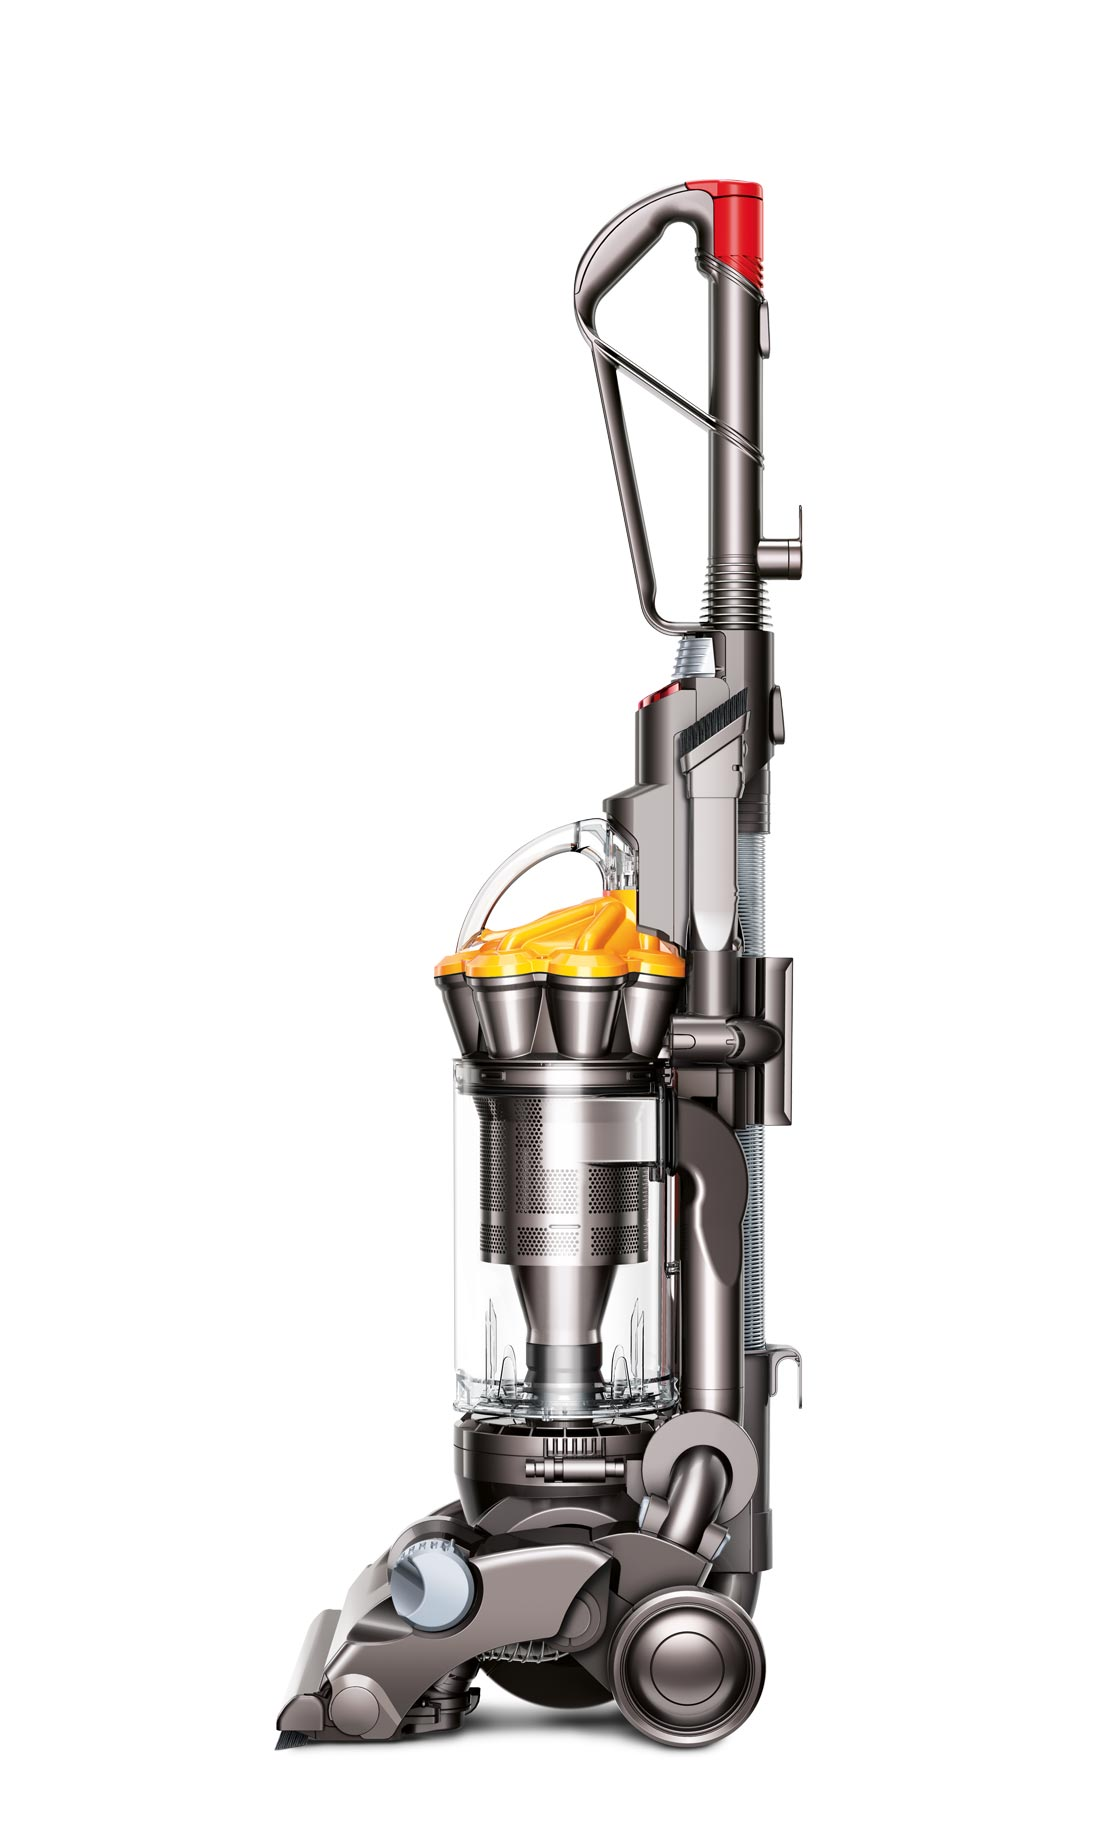 DC33 Multi floor upright vacuum cleaner image